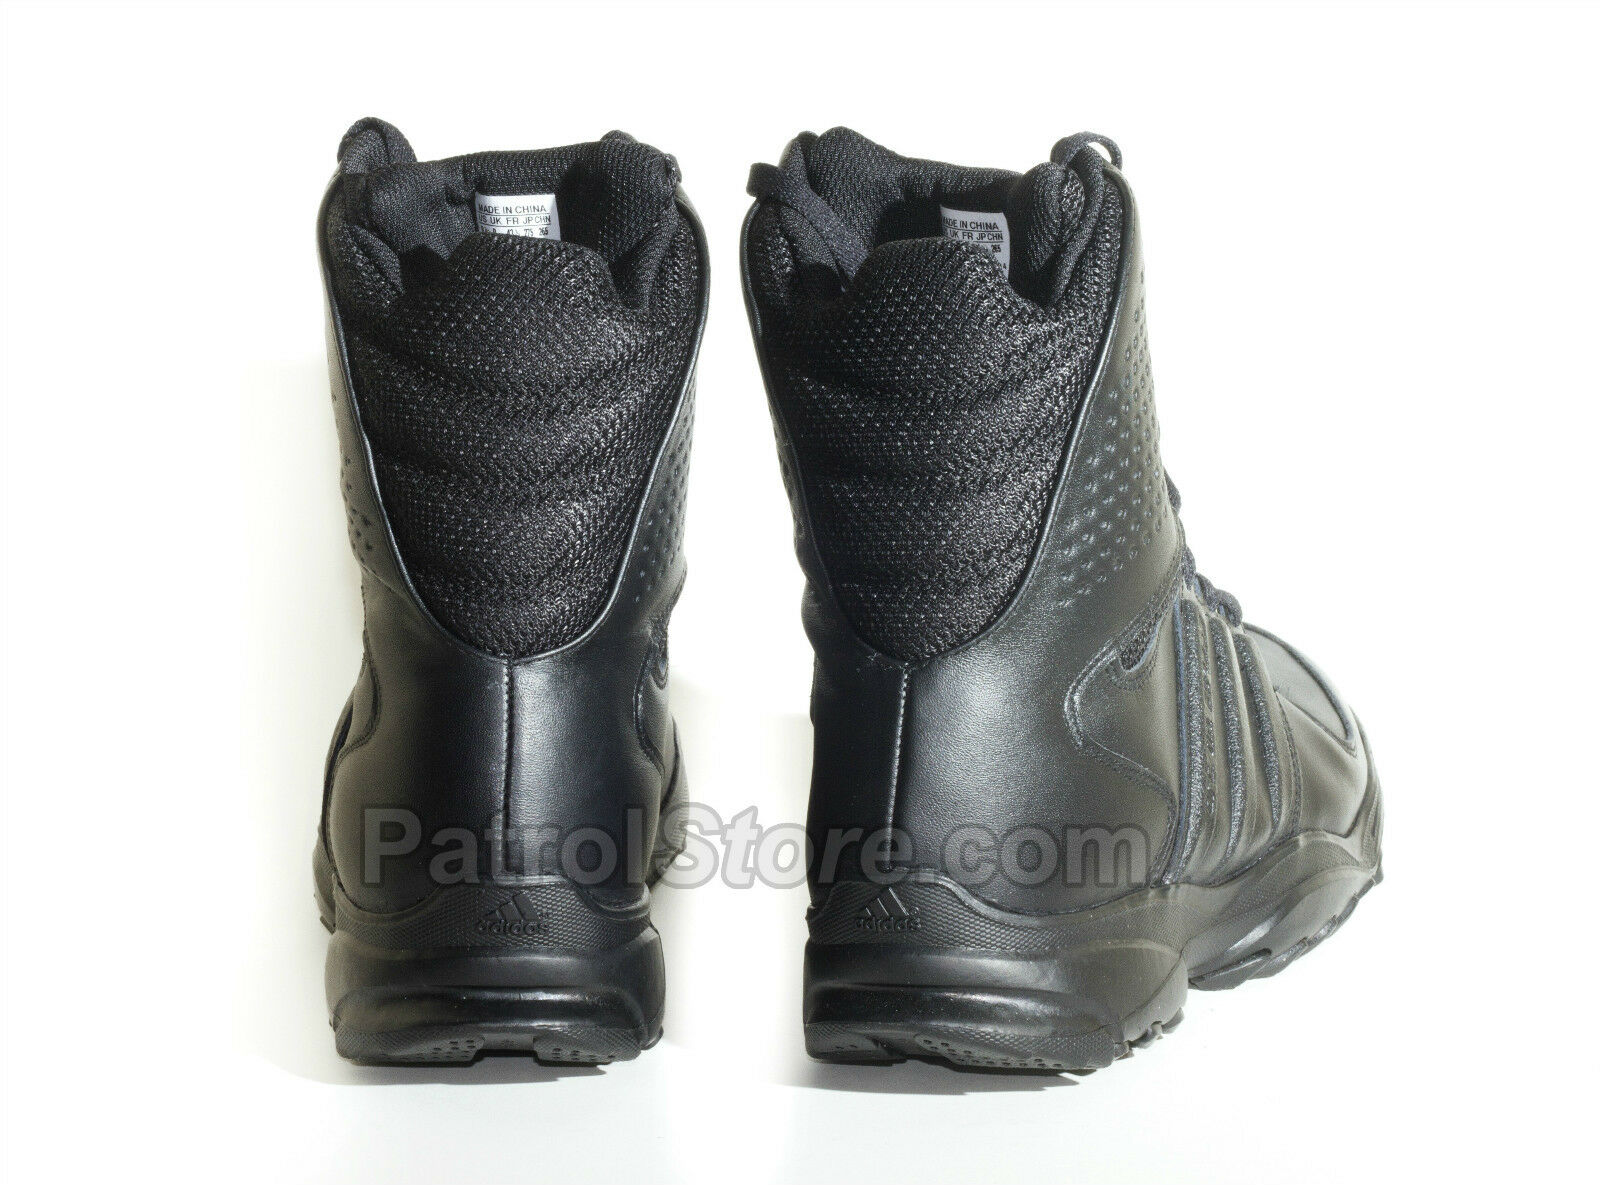 bba713647130 ... Genuine Adidas GSG9.2 Combat Boot police military cadet security фото  ...